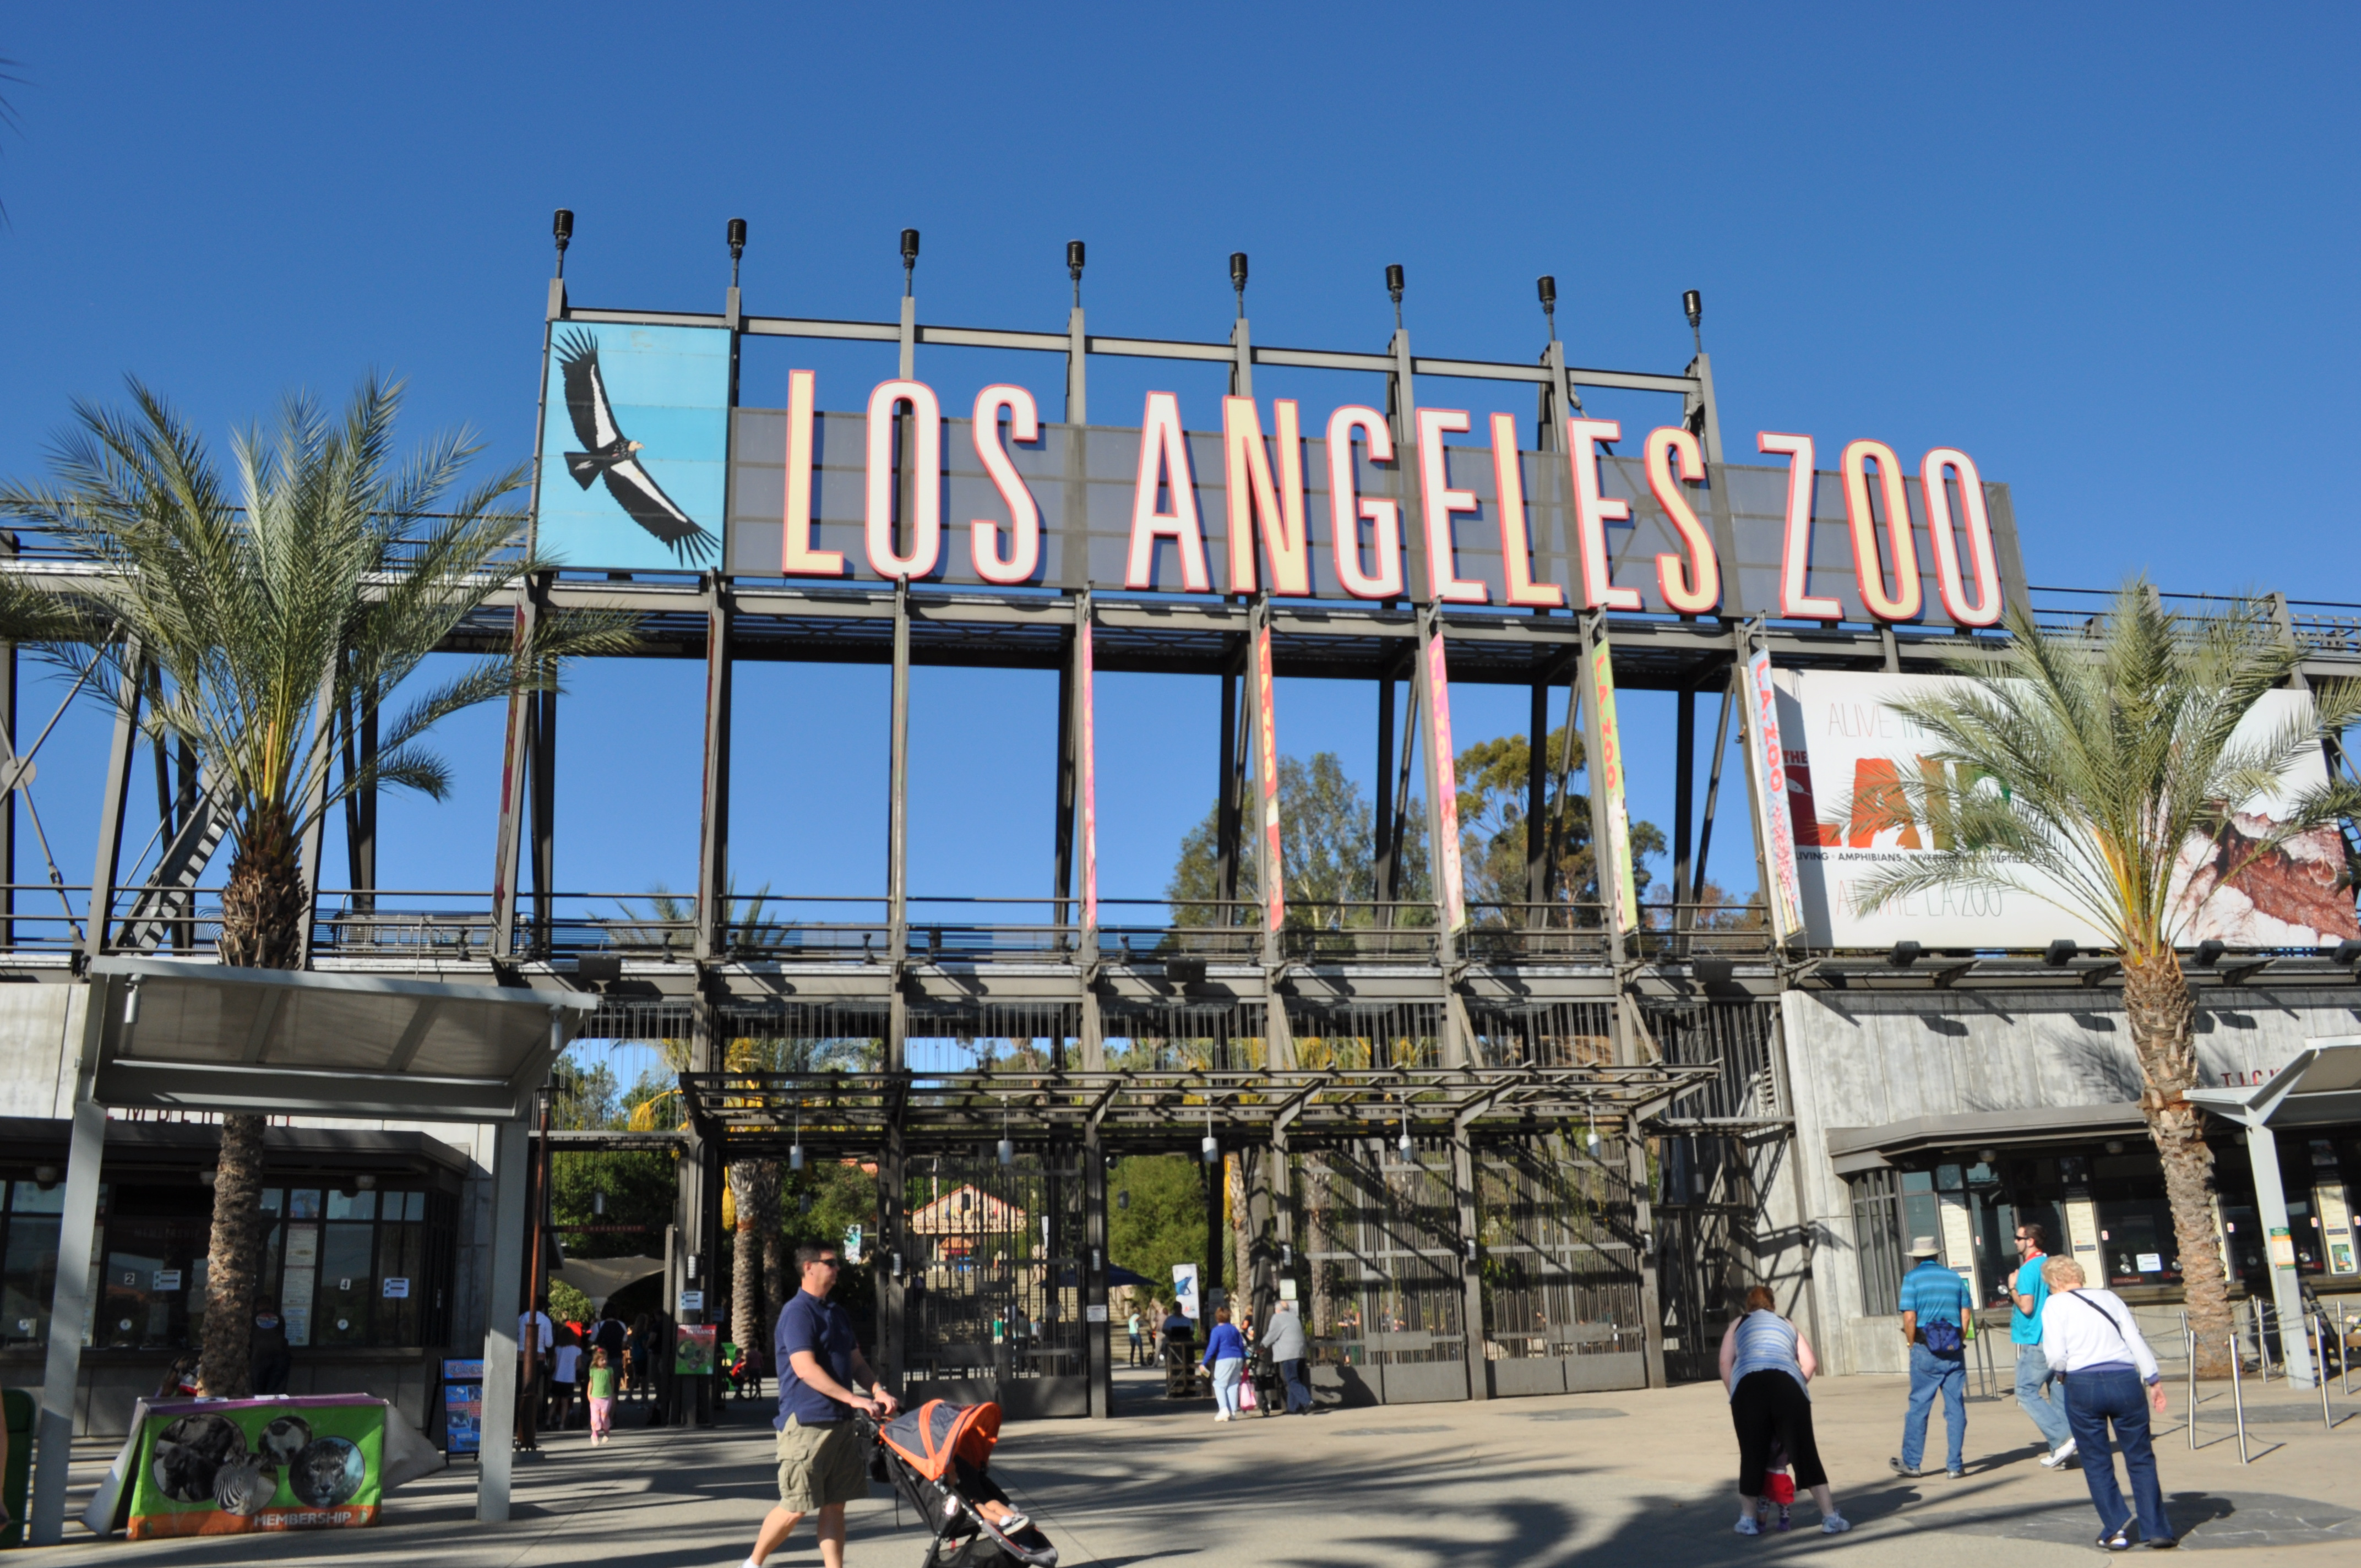 Los Angeles Zoo Sign